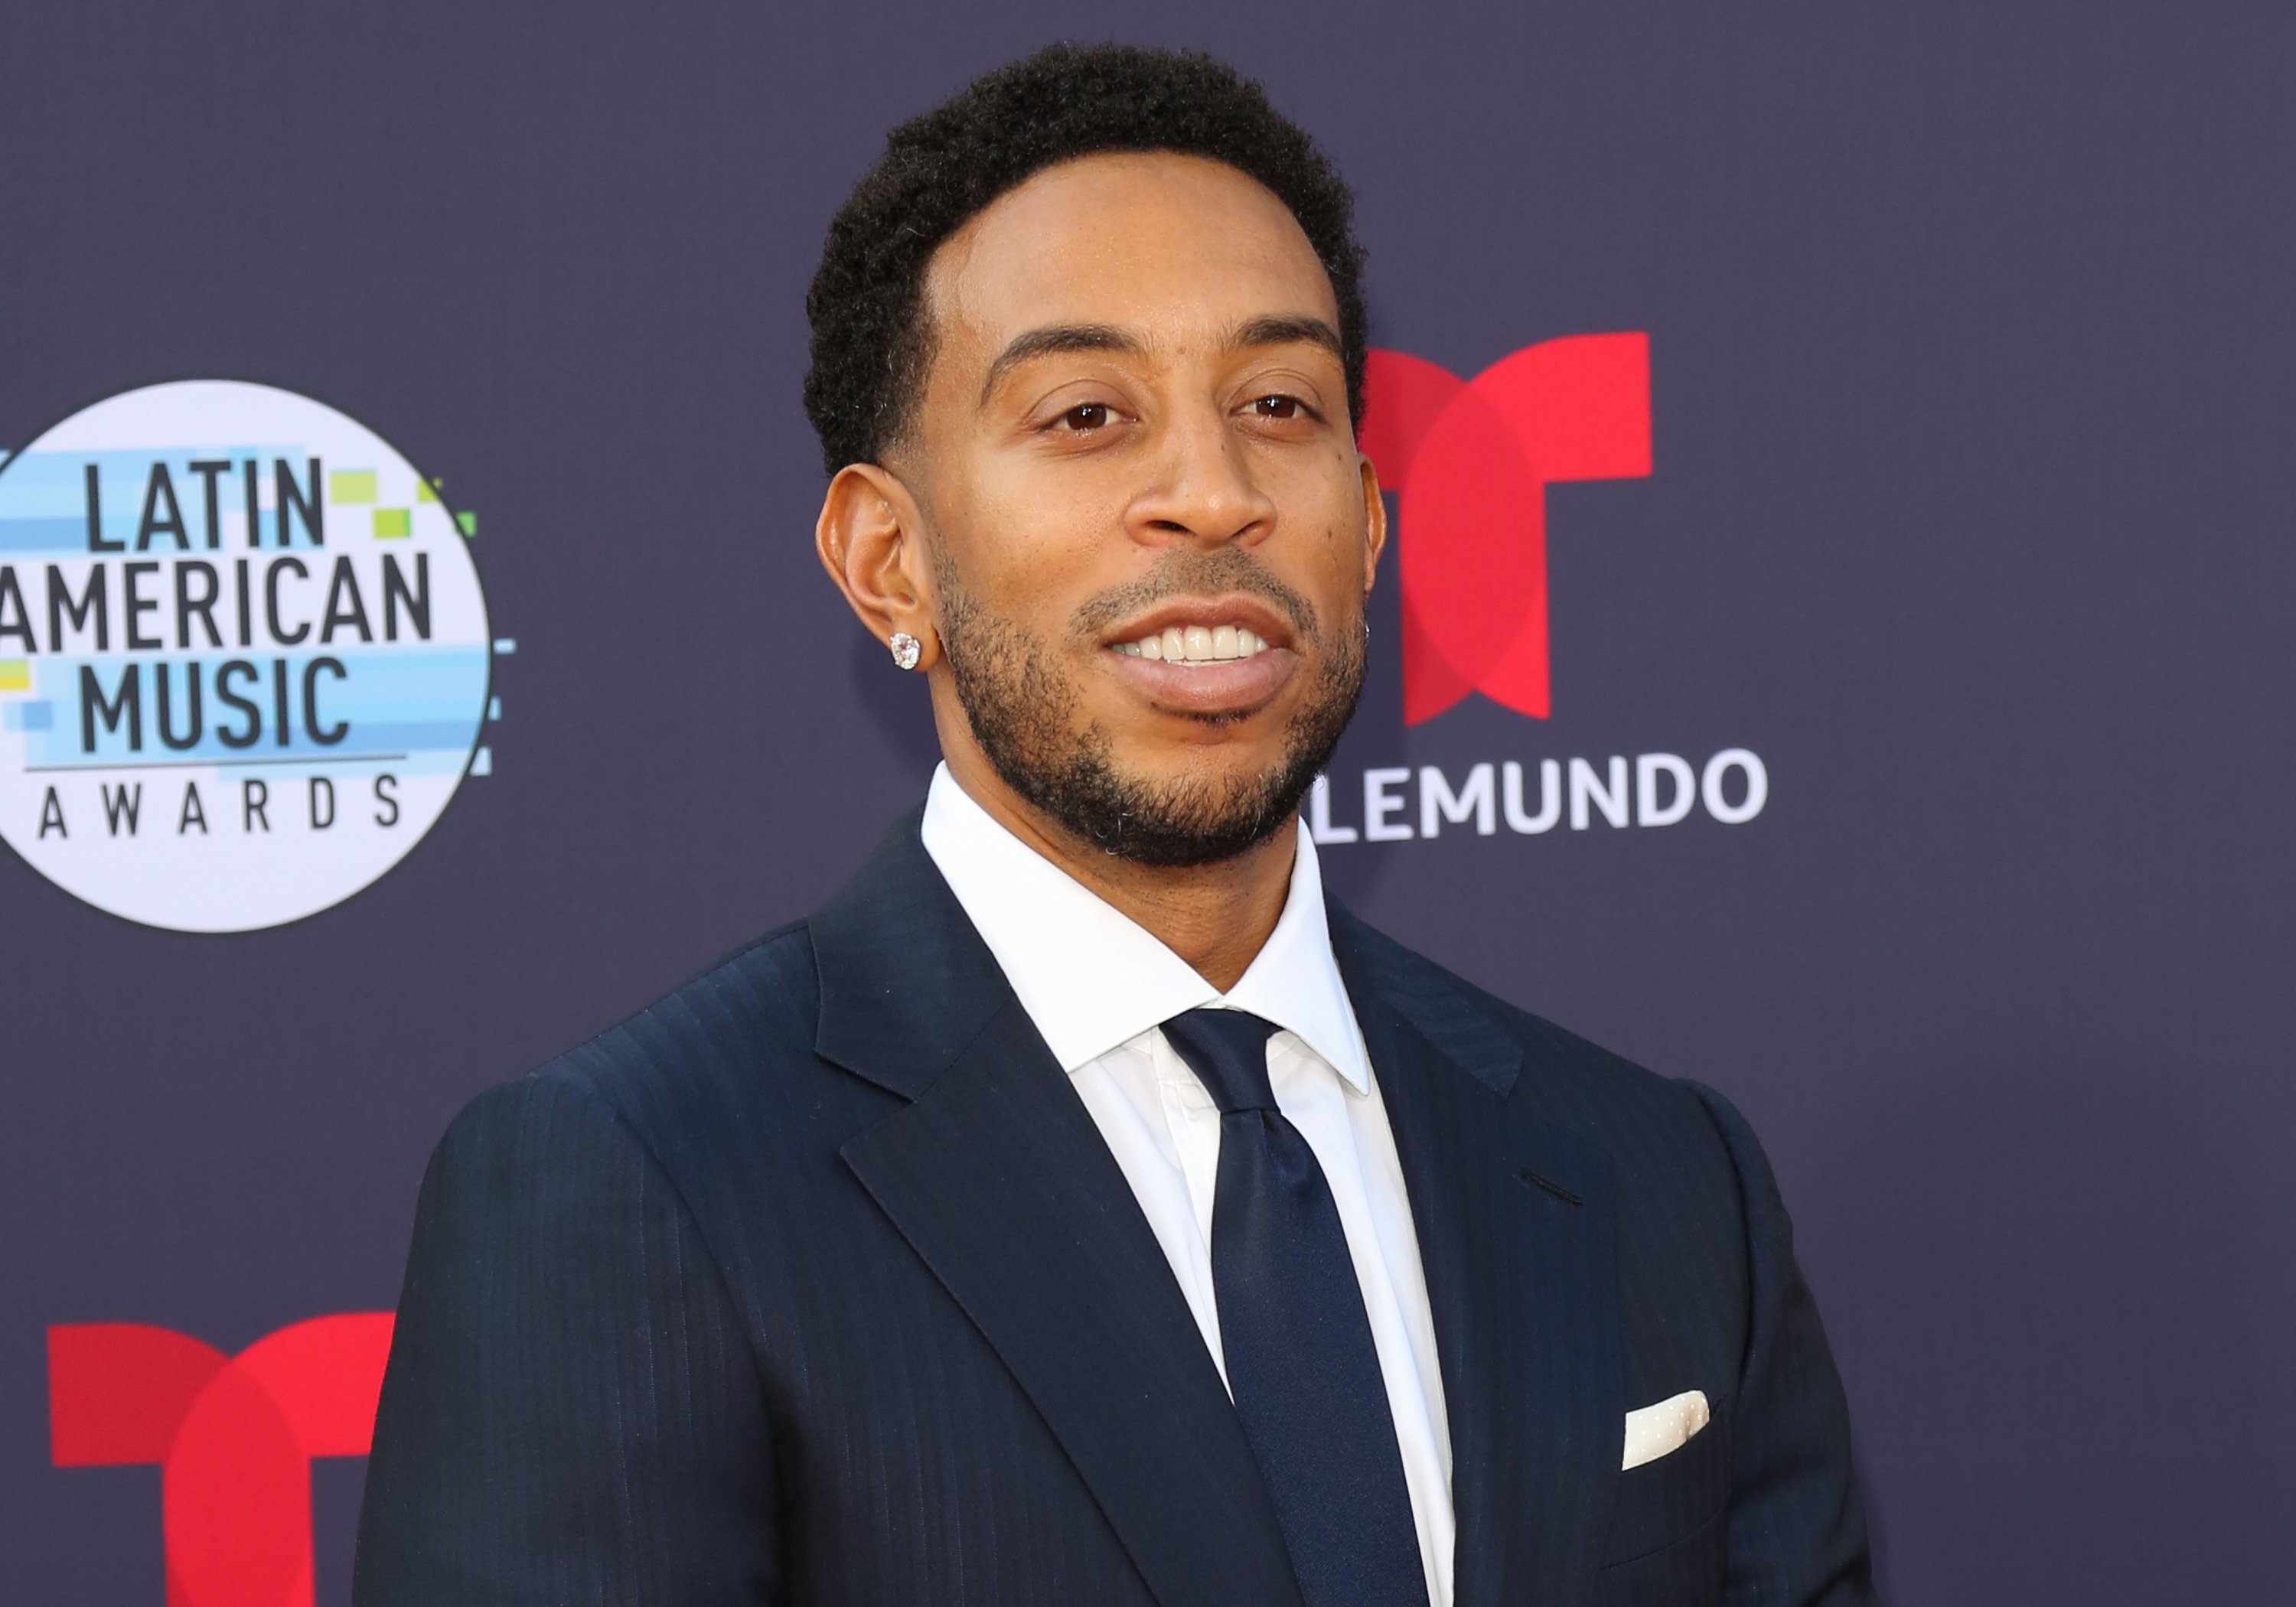 Actor Ludacris attends the 2018 Latin American Music Awards at Dolby Theatre in Hollywood on October 25, 2018.   Photo: Getty Images